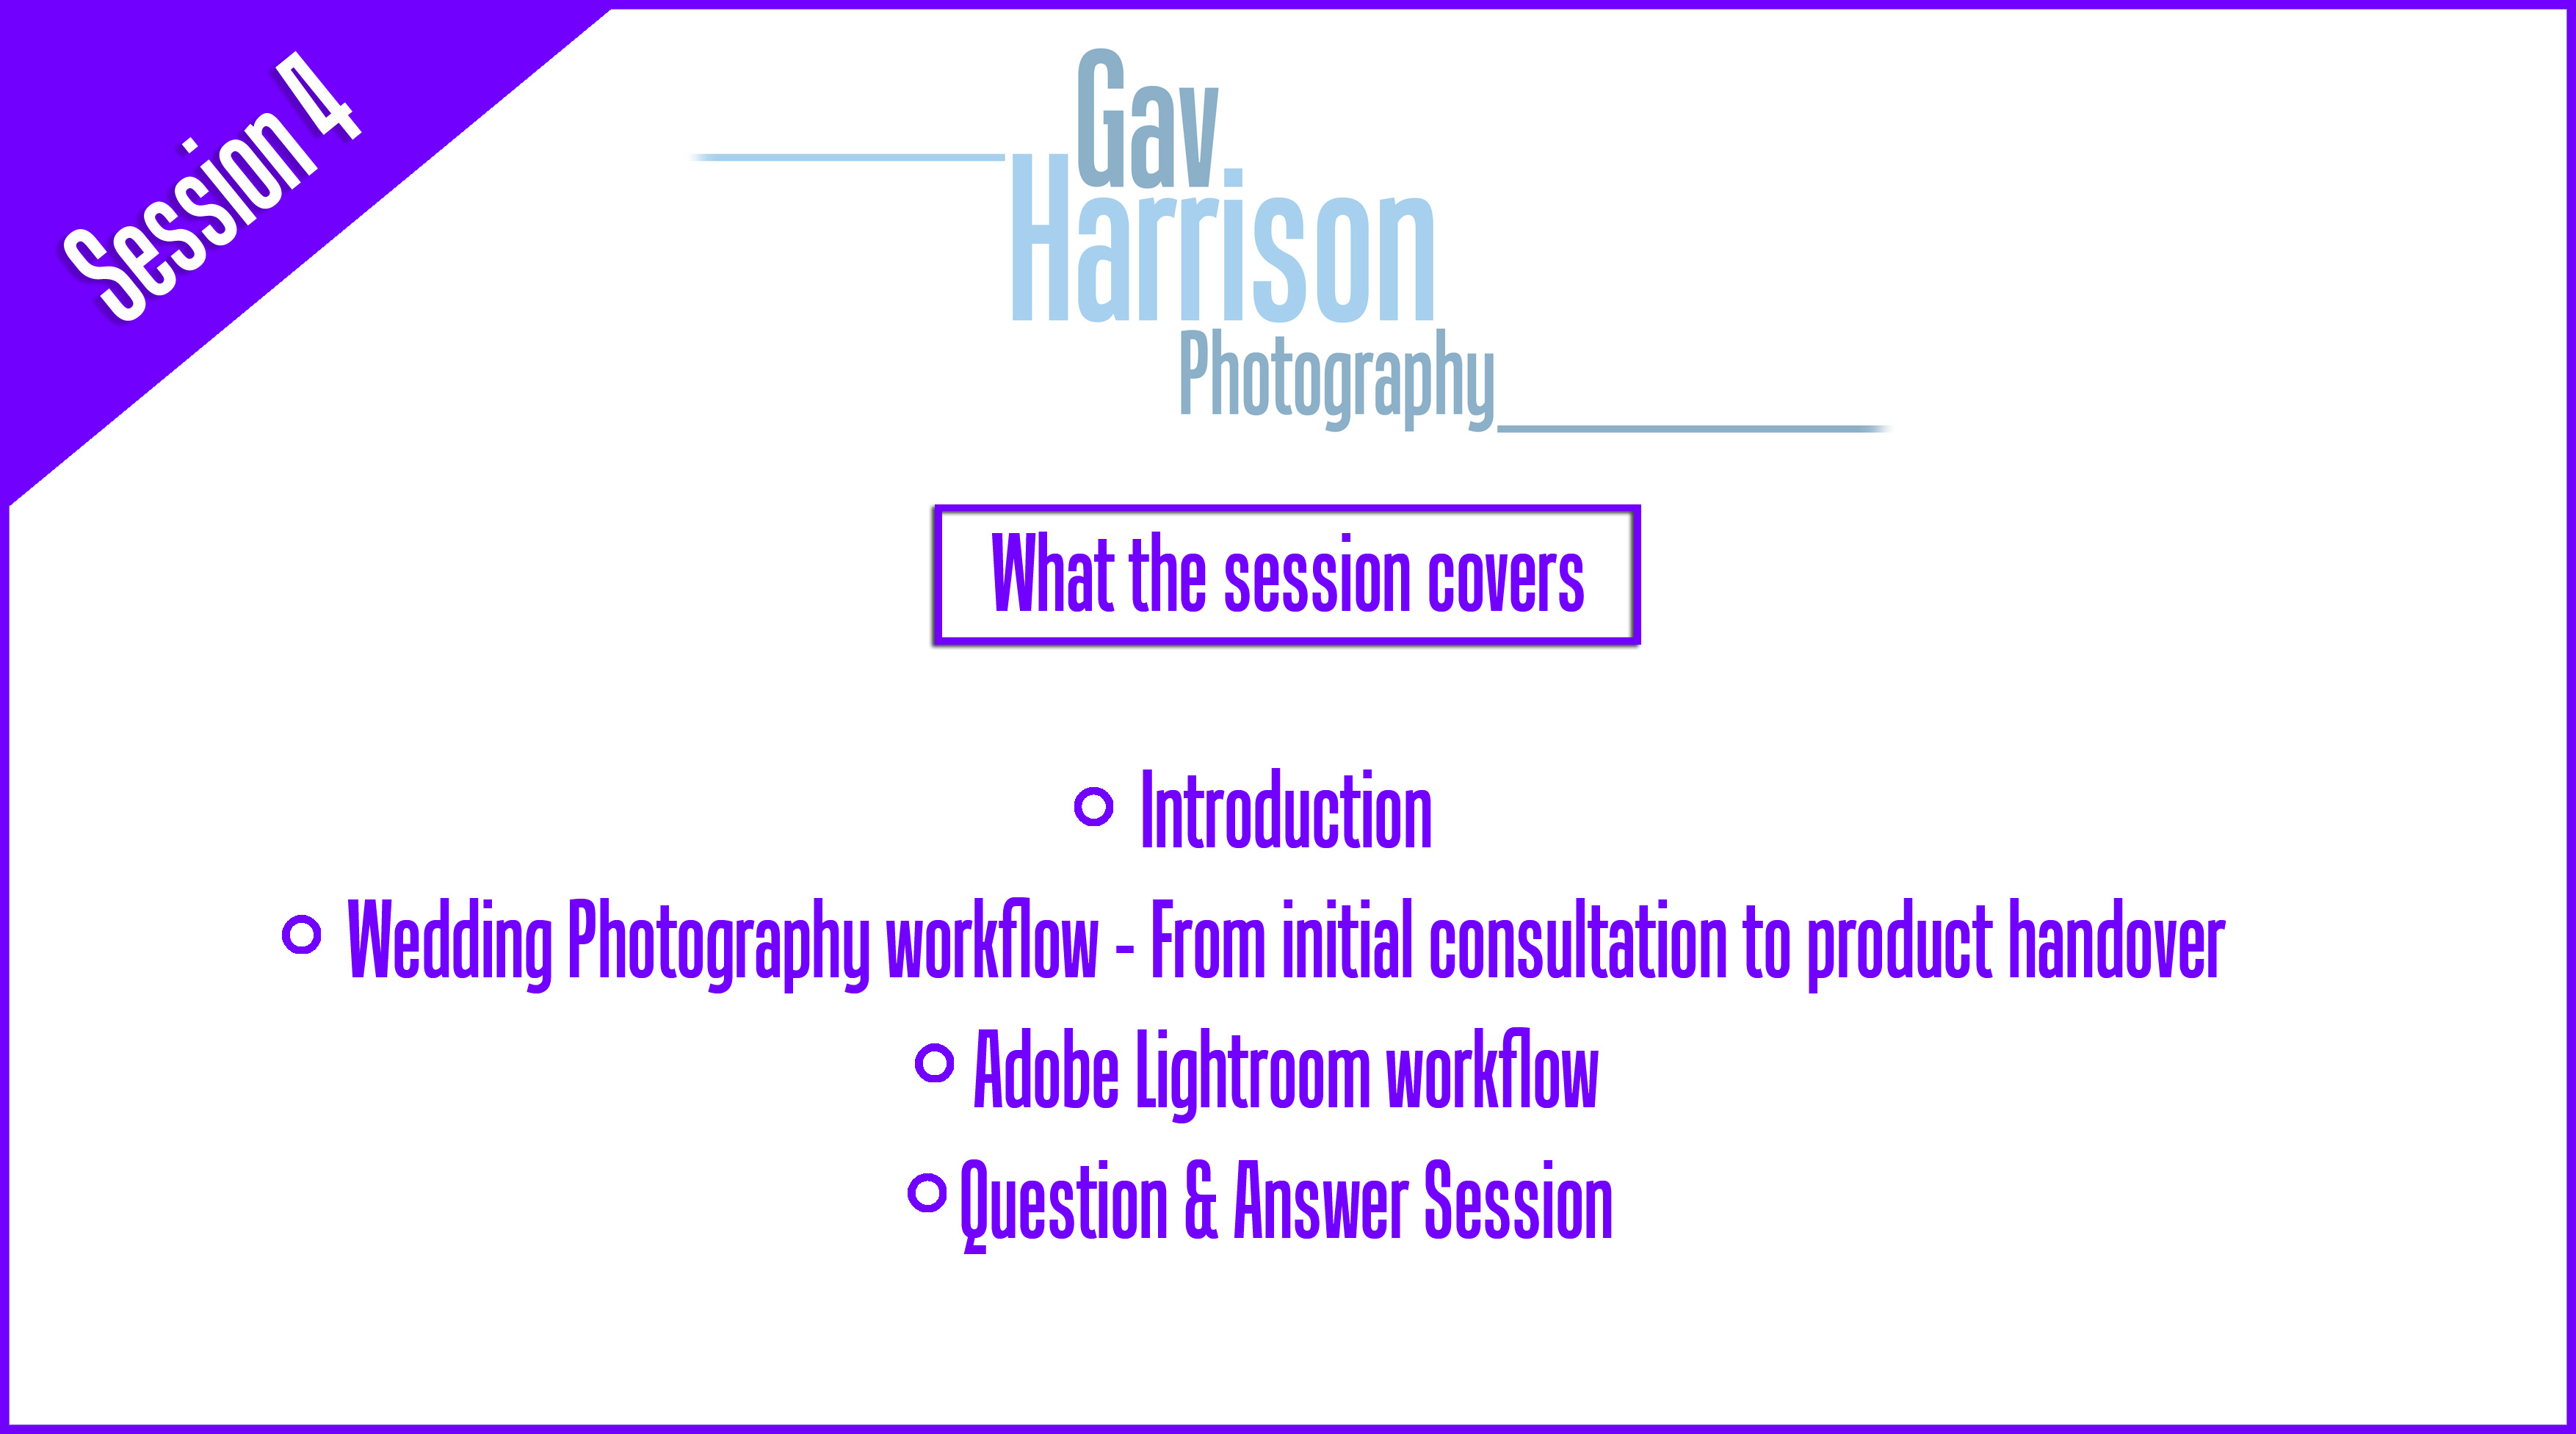 Digital Photography Tuition session, Gav Harrison Photography wedding photography